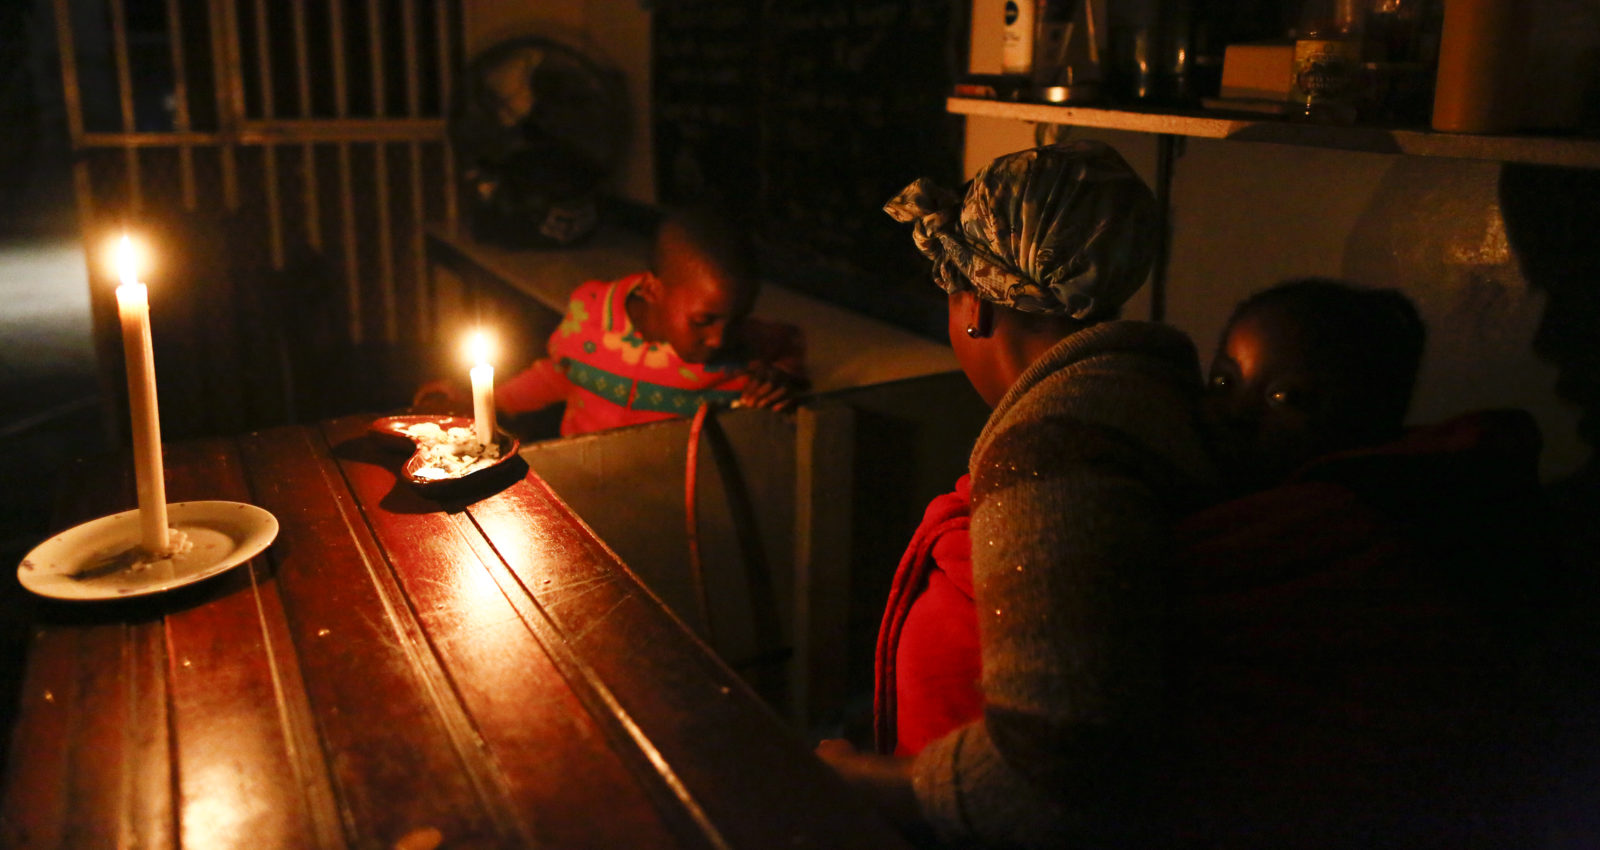 Rolling Blackouts: If Eskom can't be honest with the public, they must accountto Parliament